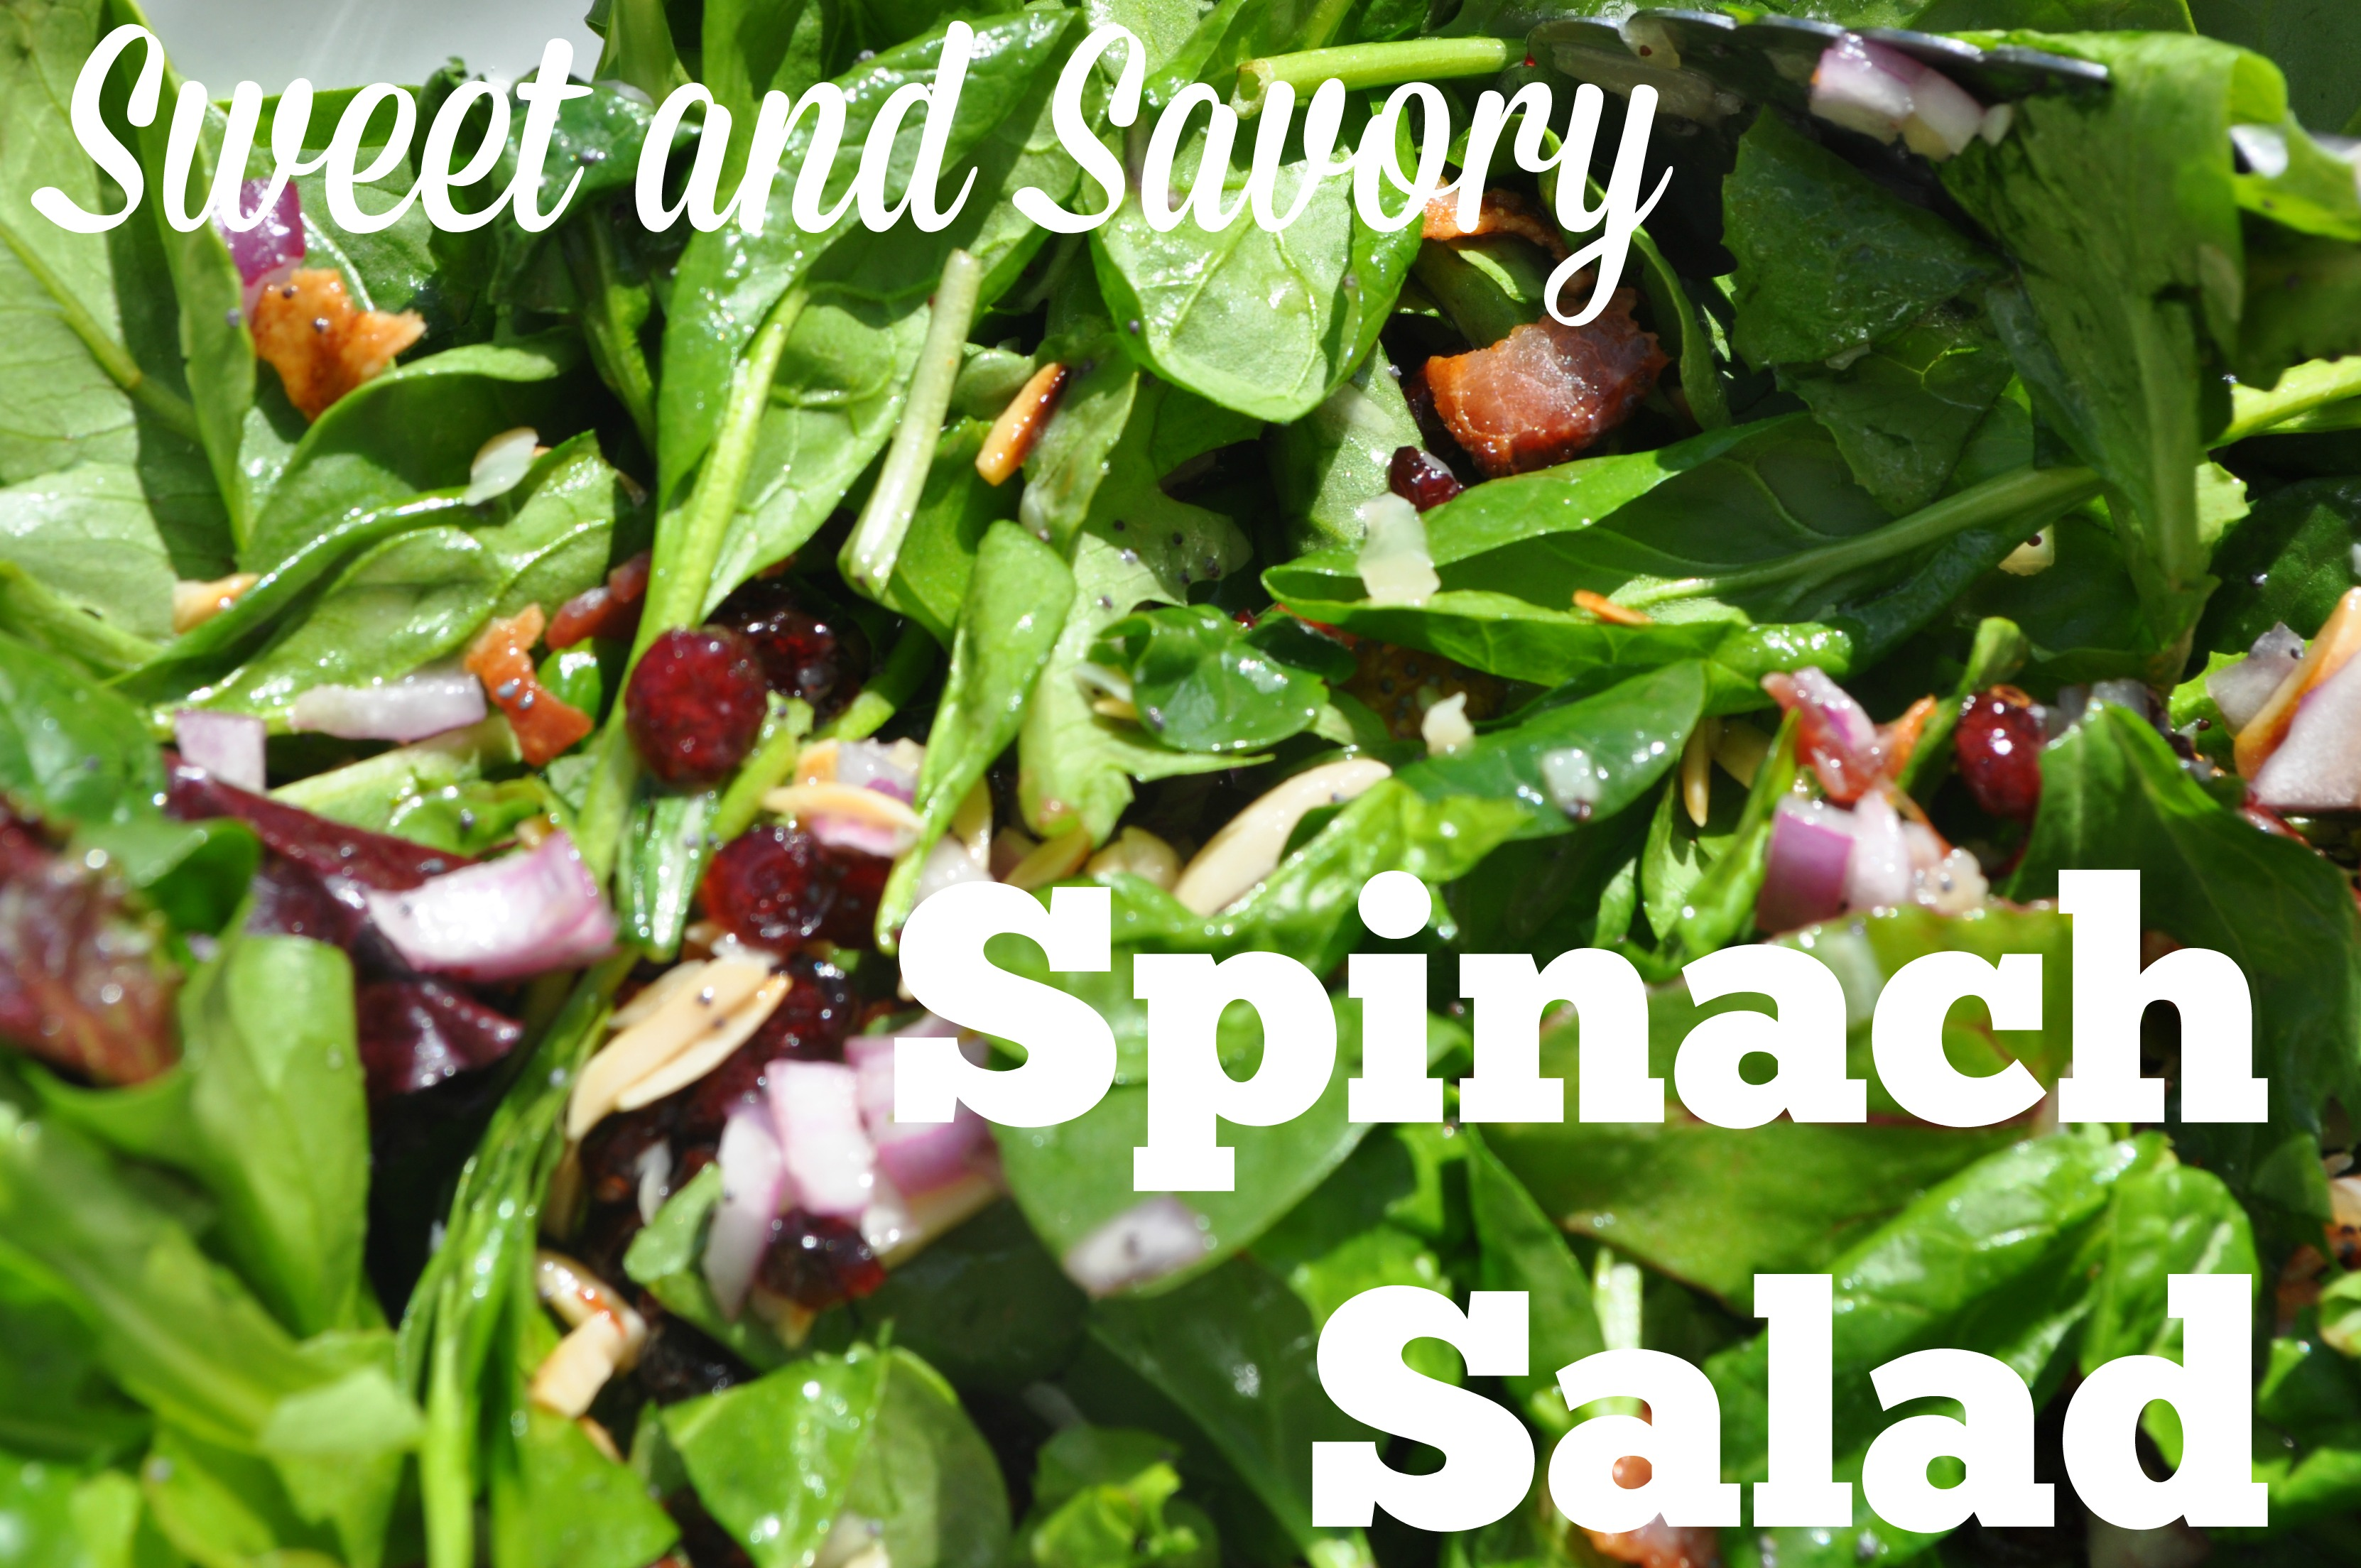 Sweet and Savory Spinach Salad